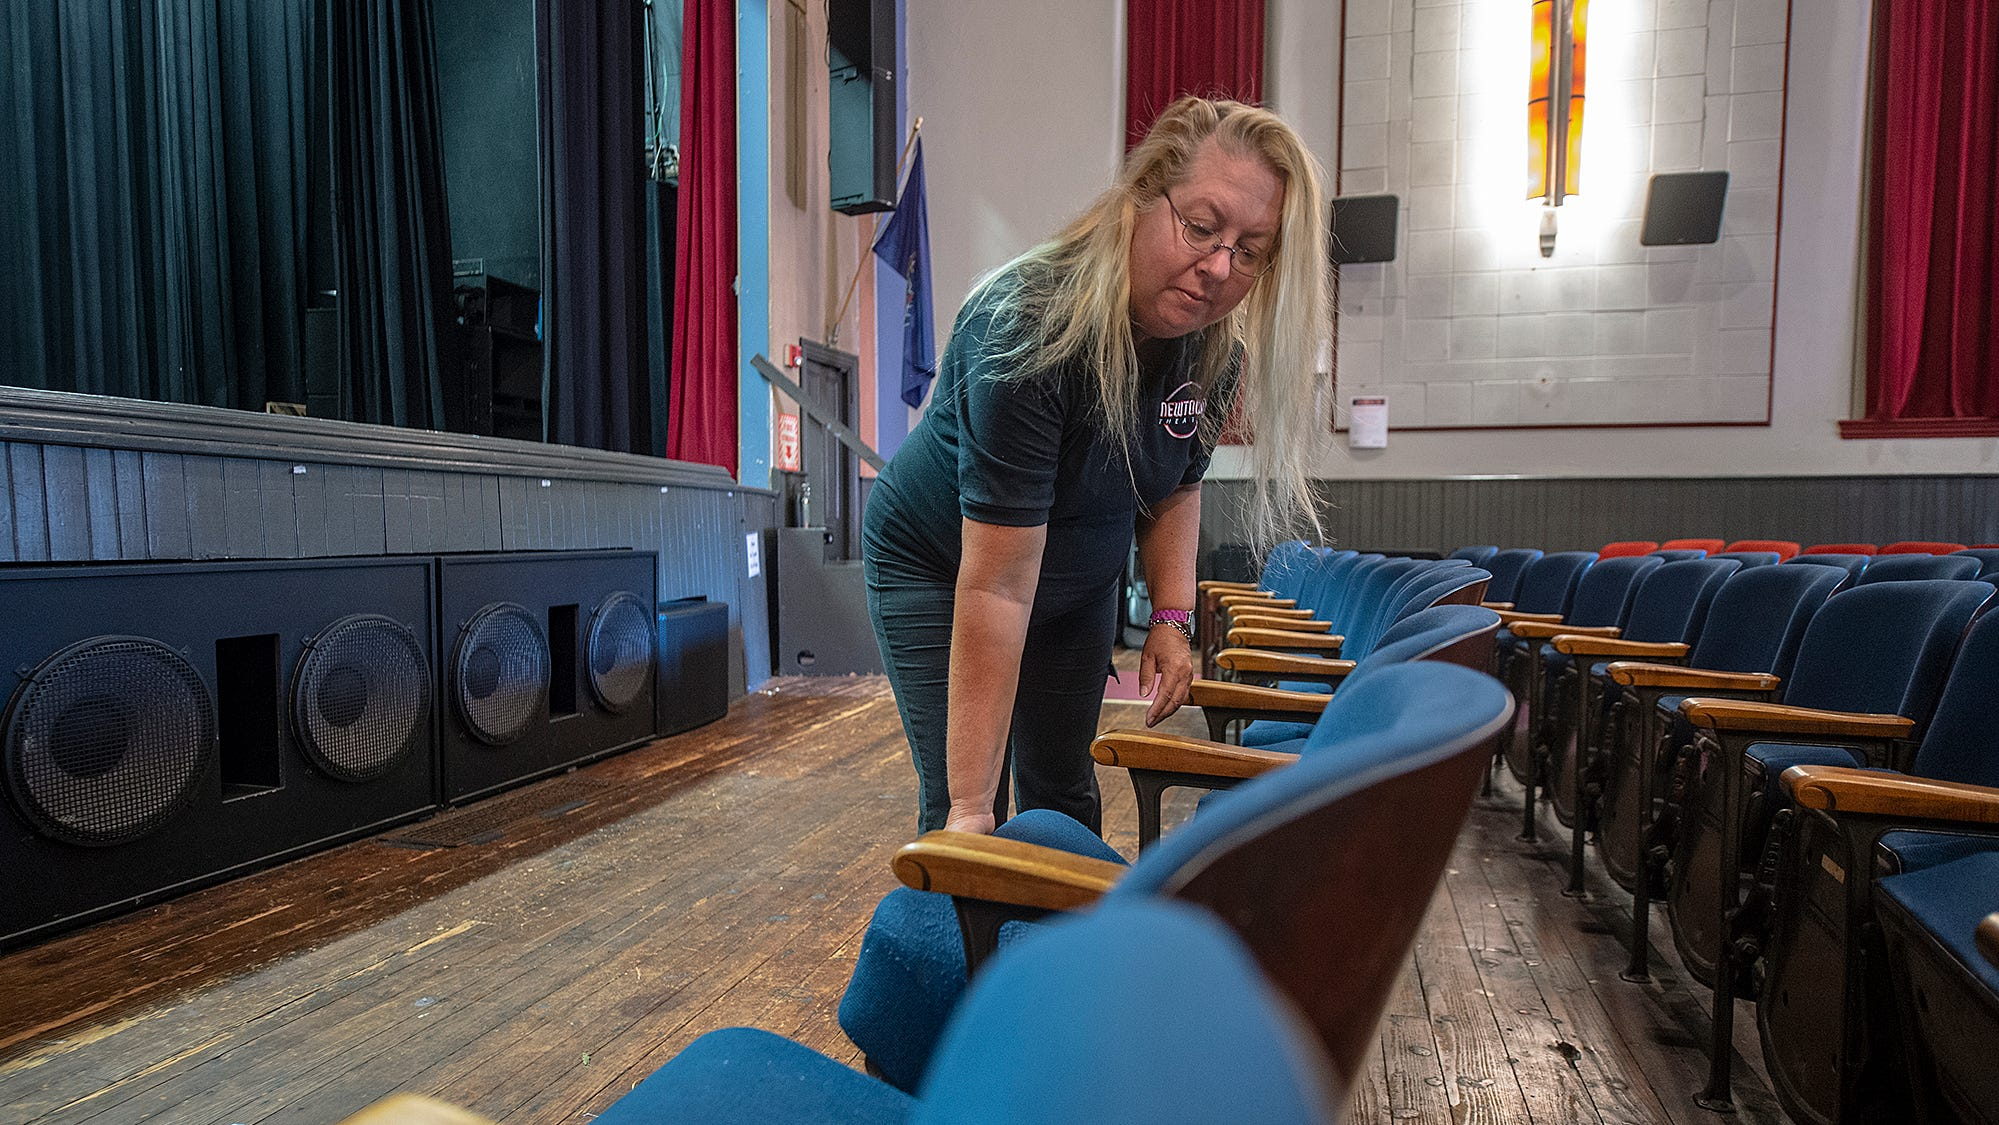 Newtown Theater director Carol Wasielewski of Trenton rearranged the rows of some of the 300 seats, dating from 1935, on Wednesday.